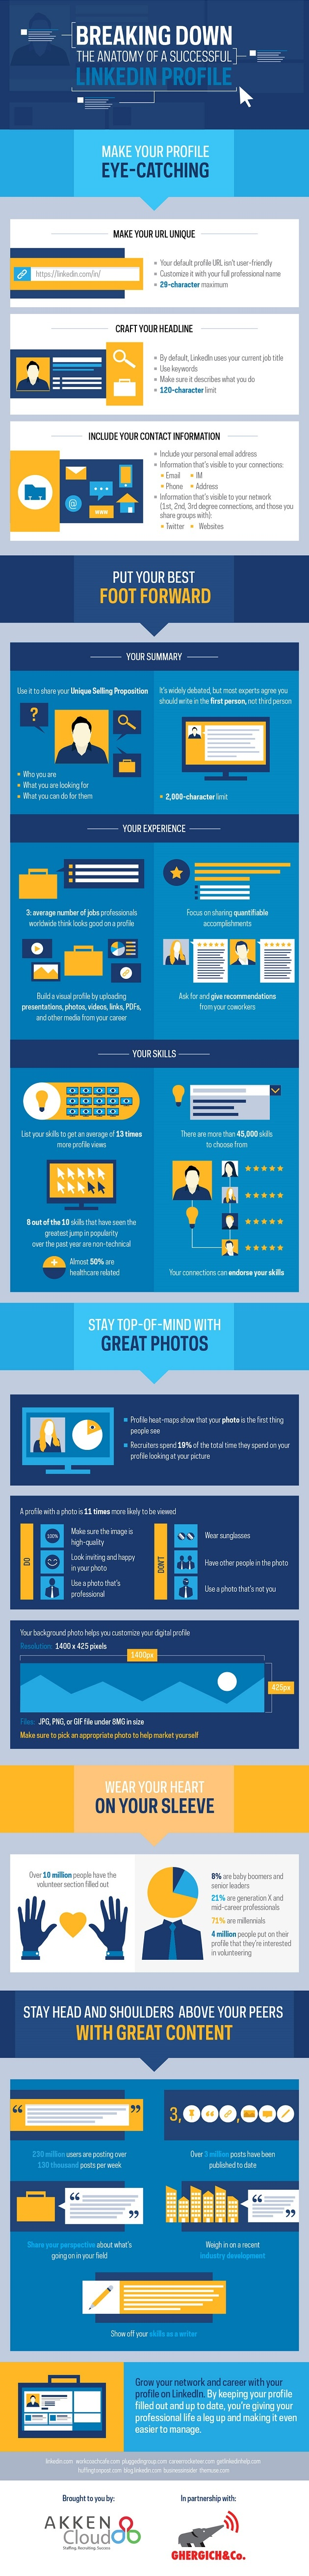 breaking-down-the-anatomy-of-a-successful-linkedin-profile-infographic